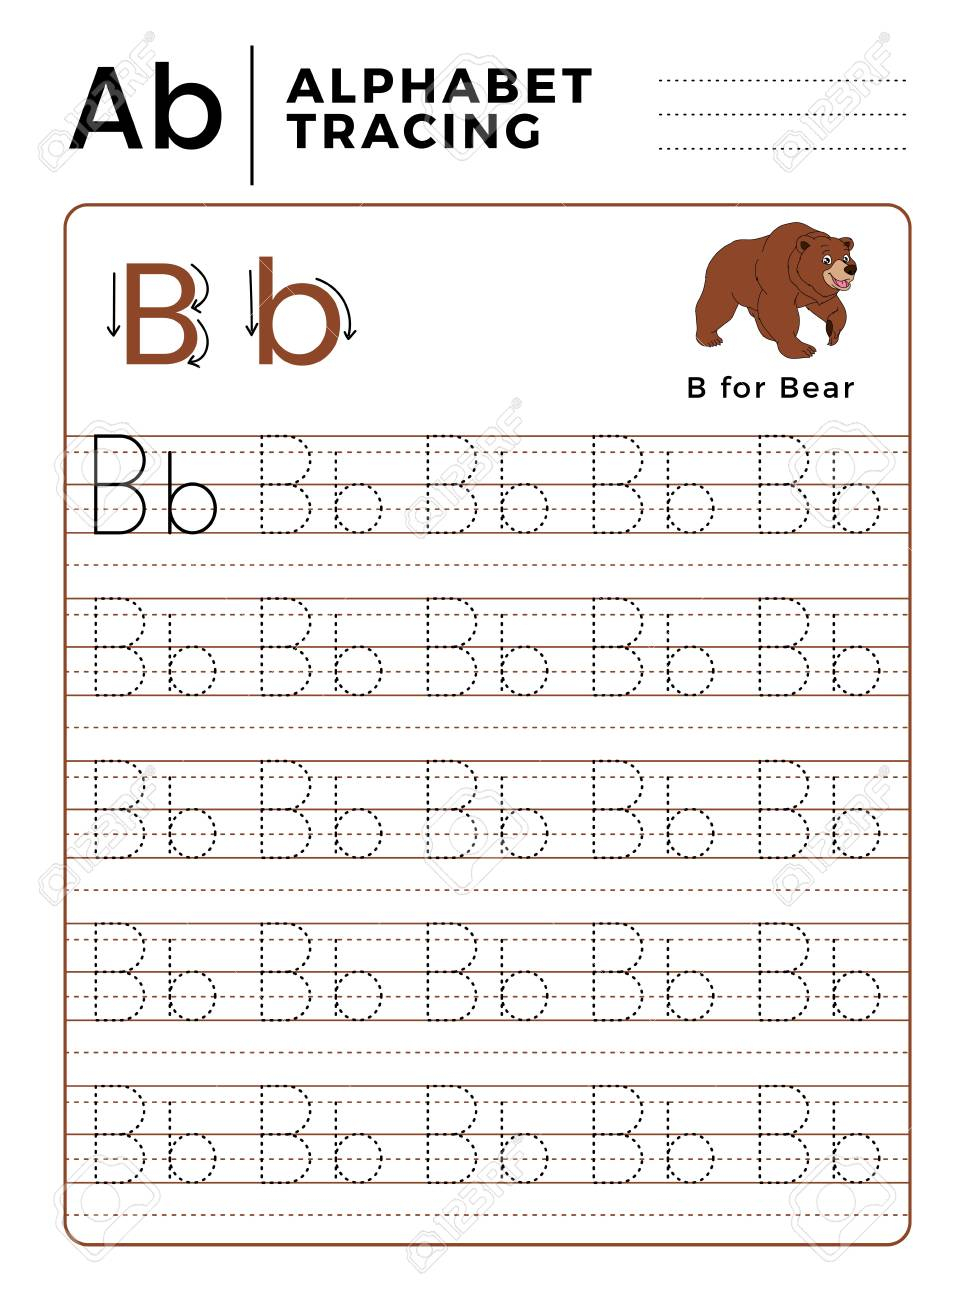 Letter B Alphabet Tracing Book With Example And Funny Bear Cartoon with Letter B Alphabet Worksheets